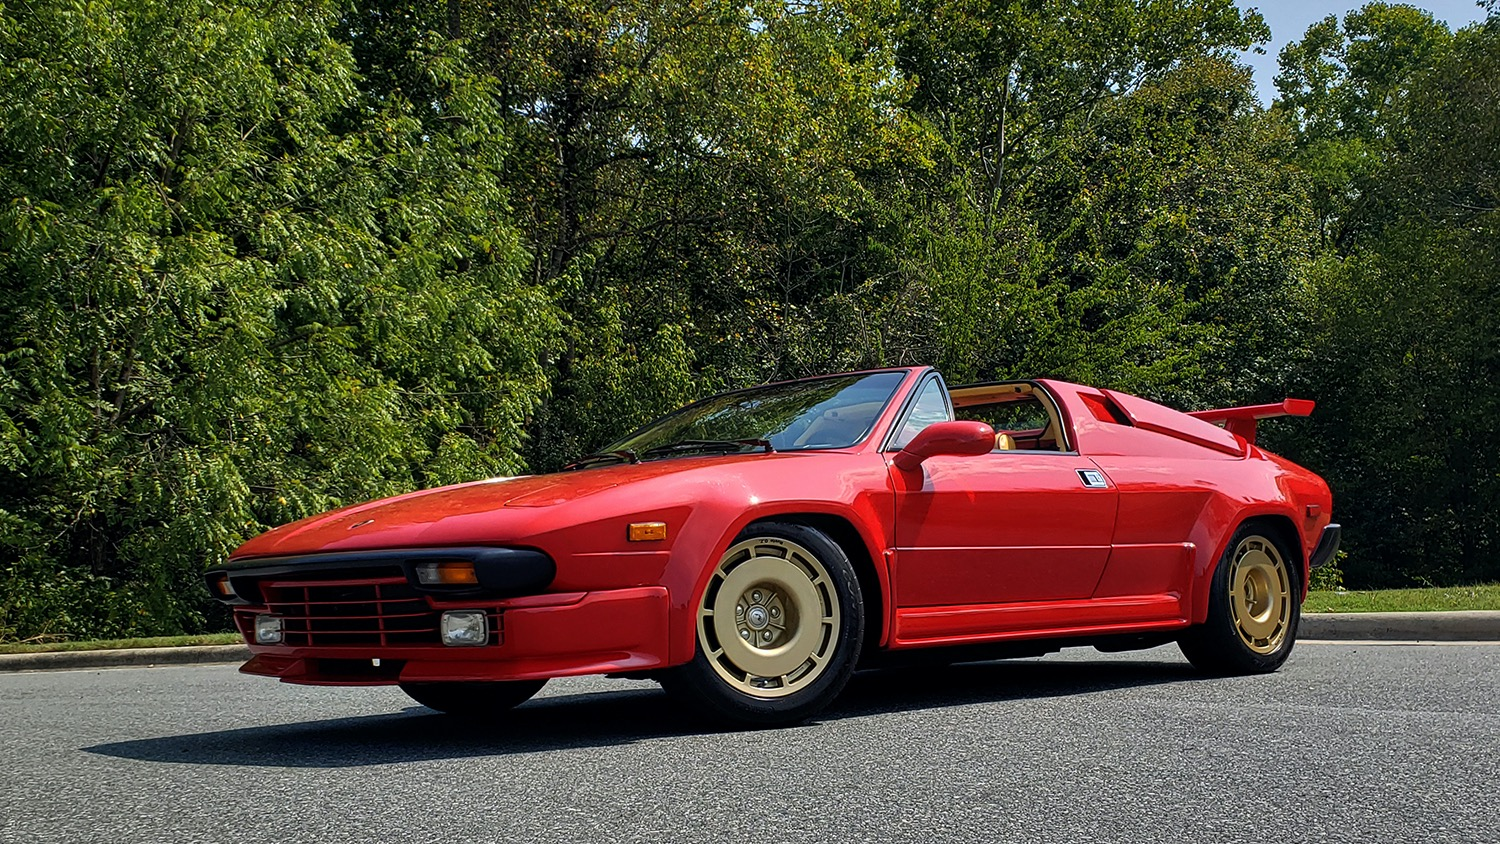 Used 1988 Lamborghini Jalpa 3.5 / 5-Speed Man / Low Miles / Excellent Condition for sale $108,995 at Formula Imports in Charlotte NC 28227 17